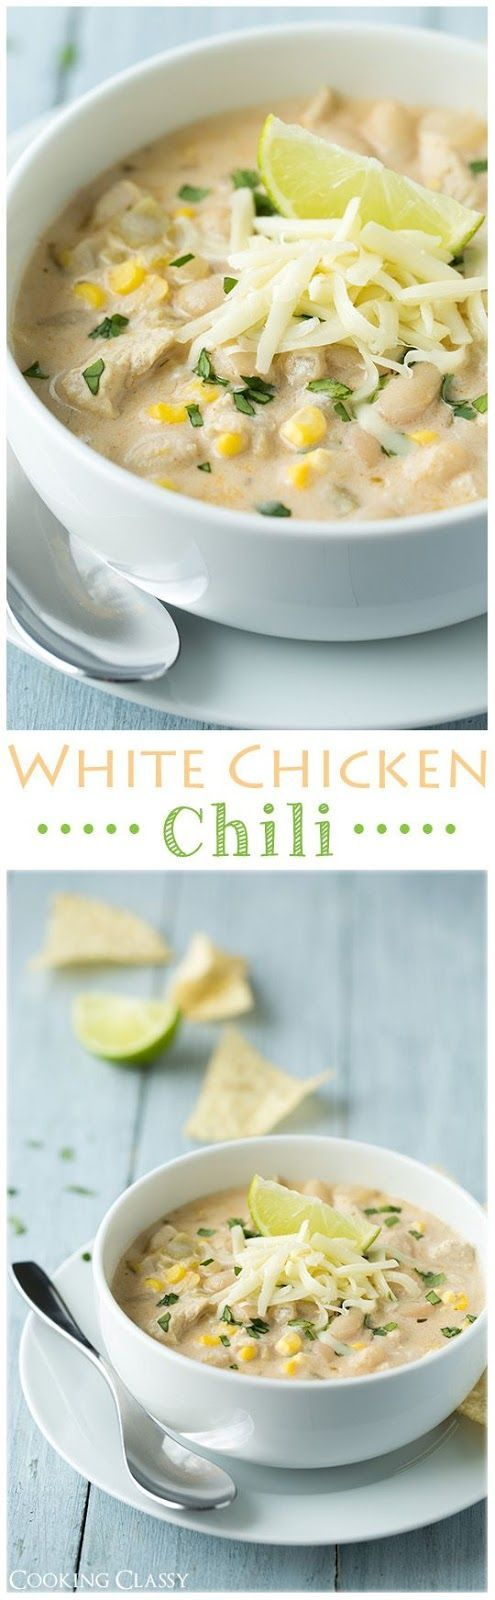 White Chicken Chili Soup Recipe   Cooking Classy - The BEST Homemade Soups Recipes - Easy, Quick and Yummy Lunch and Dinner Family Favorites Meals Ideas